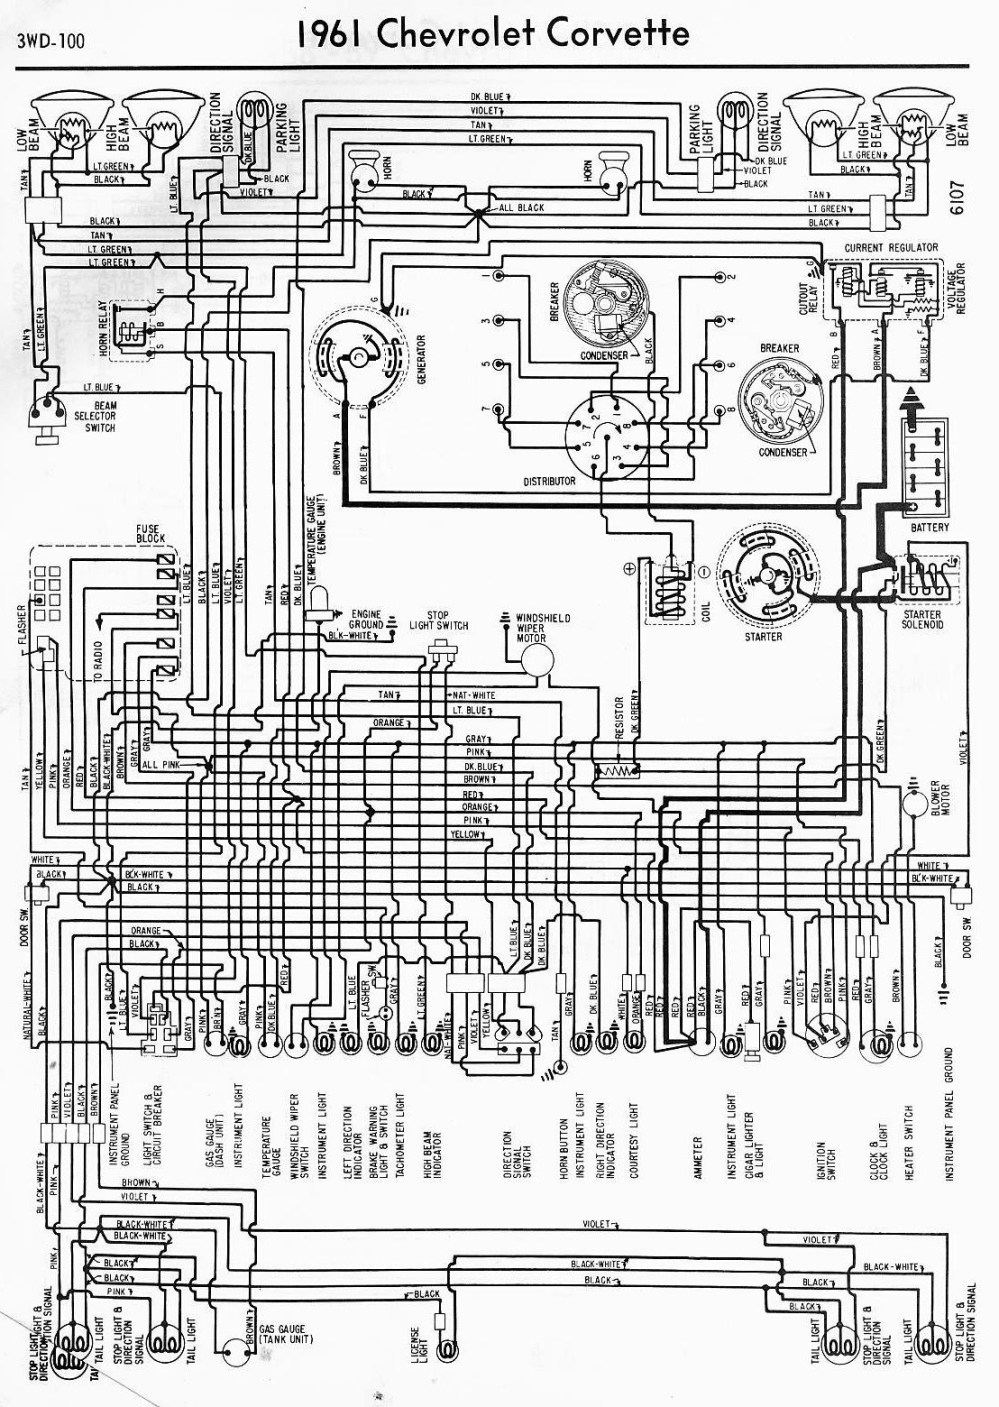 medium resolution of 1961 chevy dash wiring diagram free download wiring diagrams long 1961 chevy dash wiring diagram free download